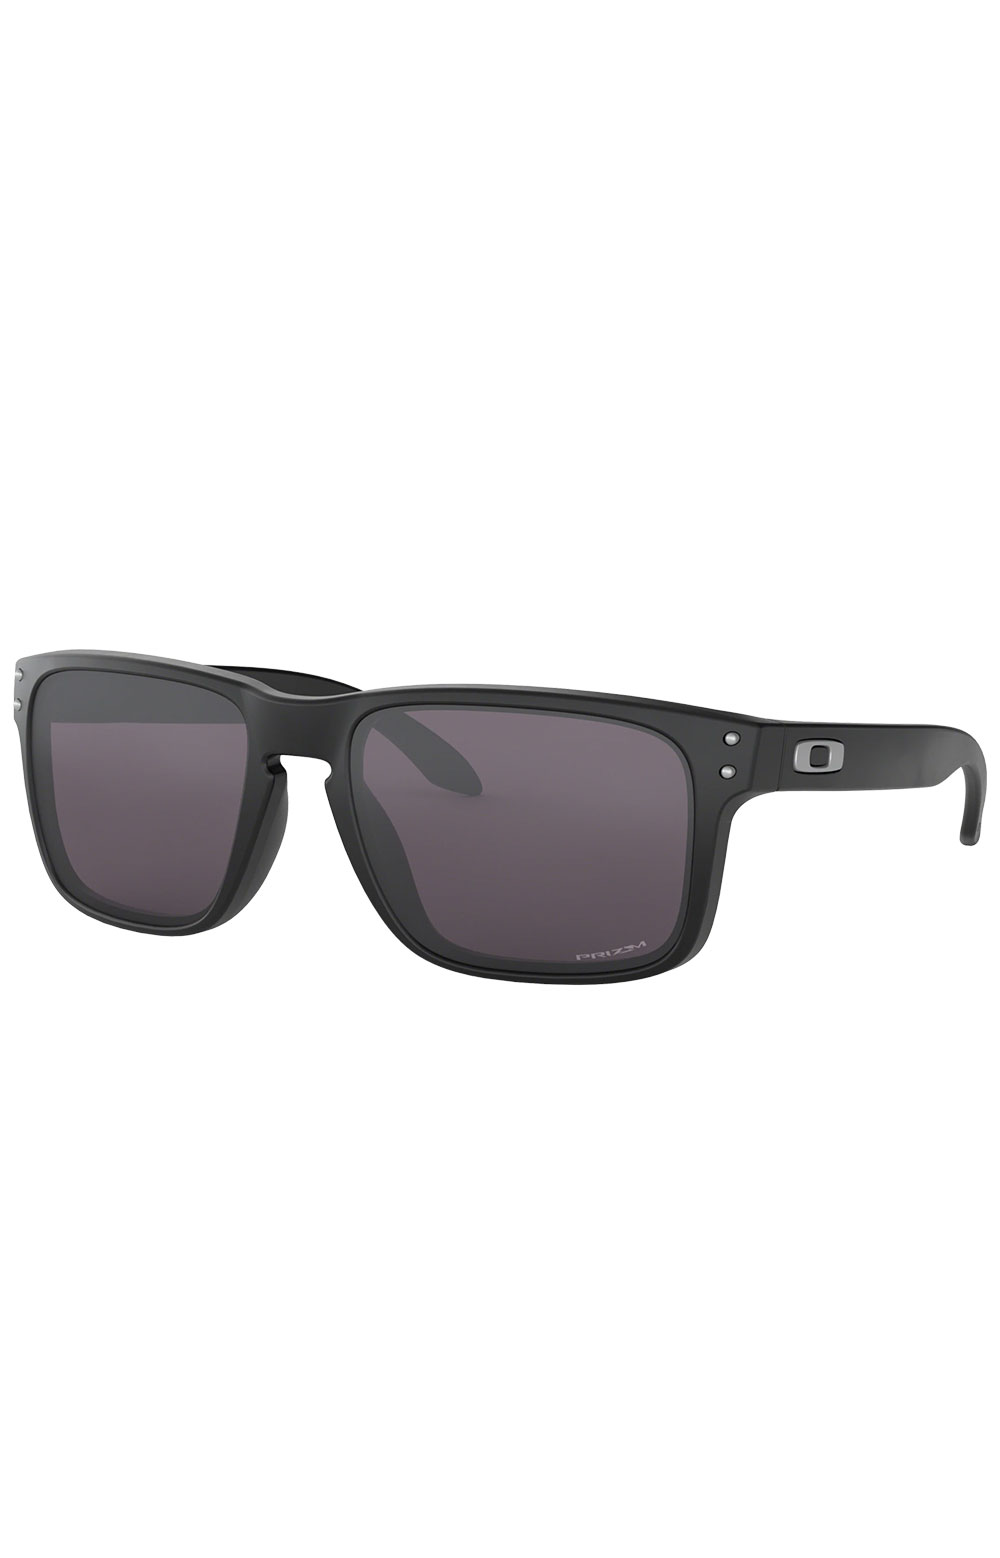 Holbrook Sunglasses - Matte Black/Prizm Grey